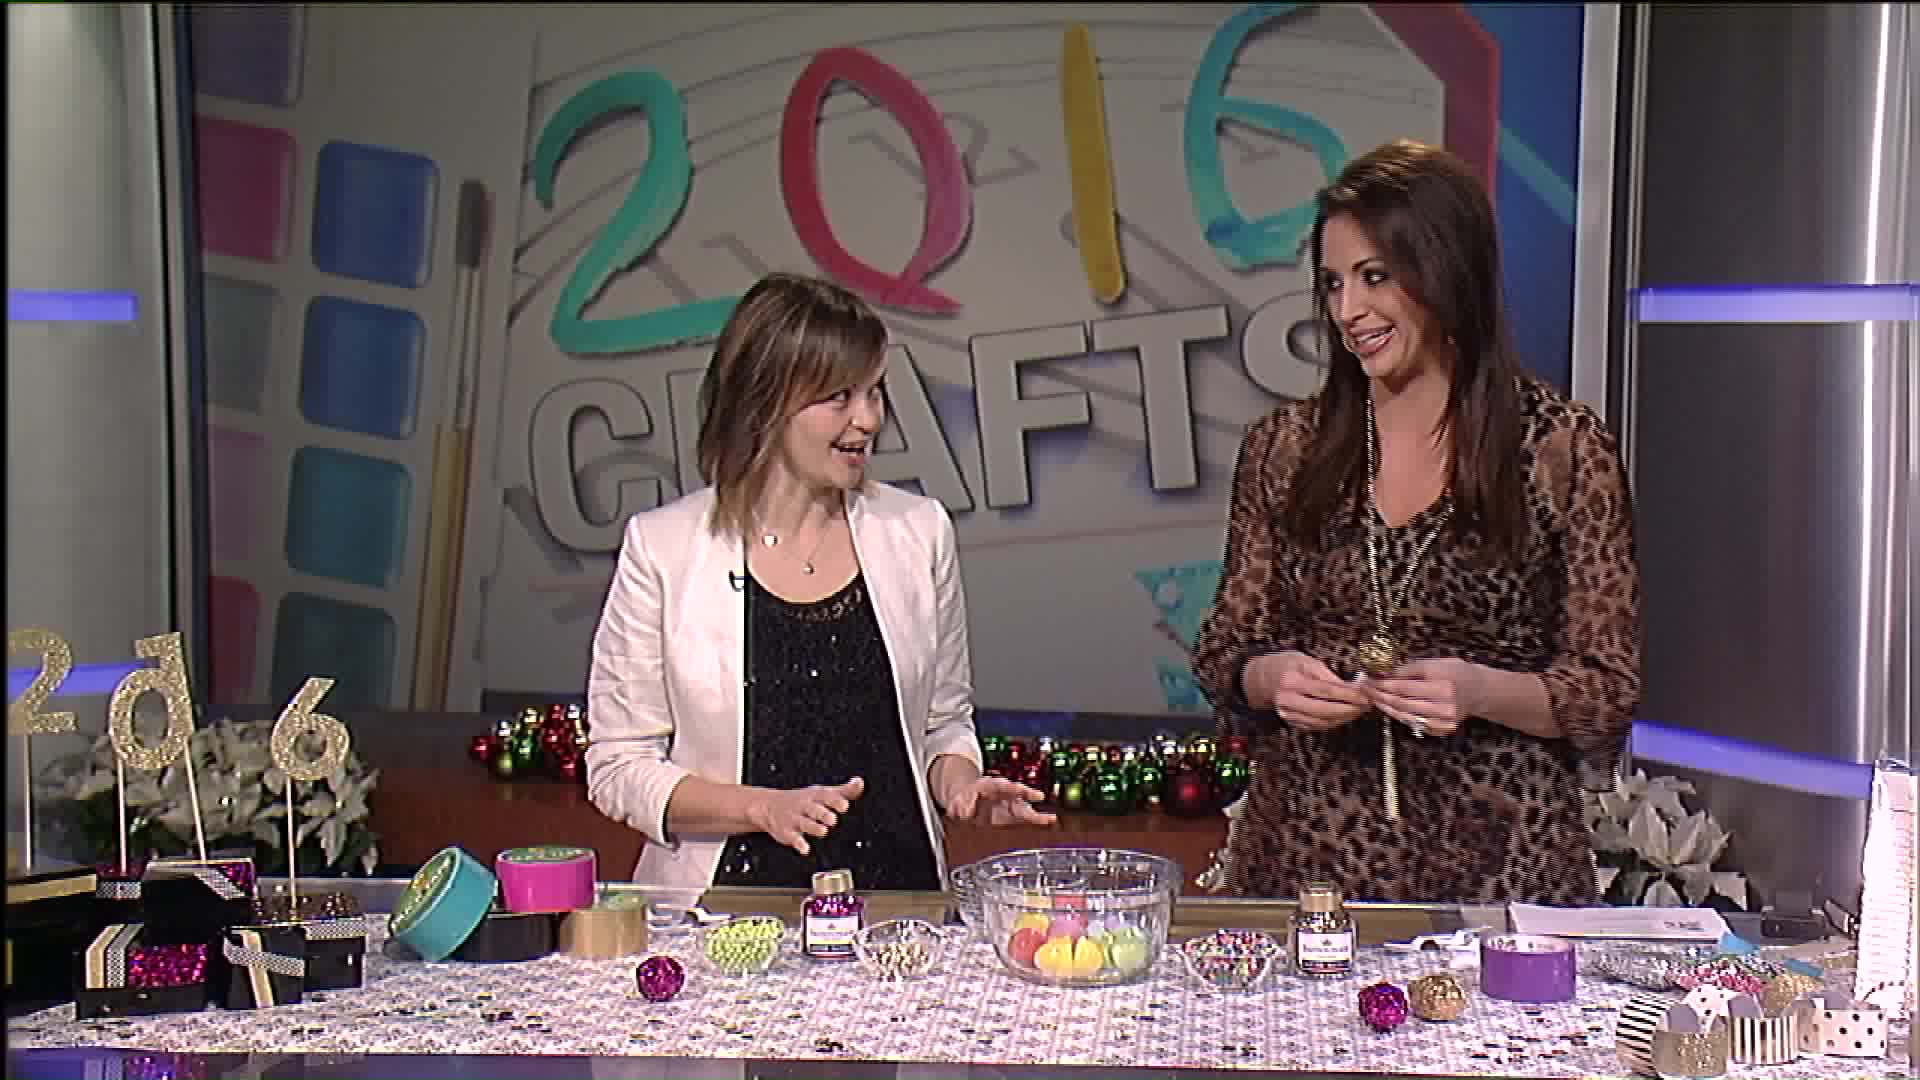 Fun Family Crafts To Do On New Year's Eve